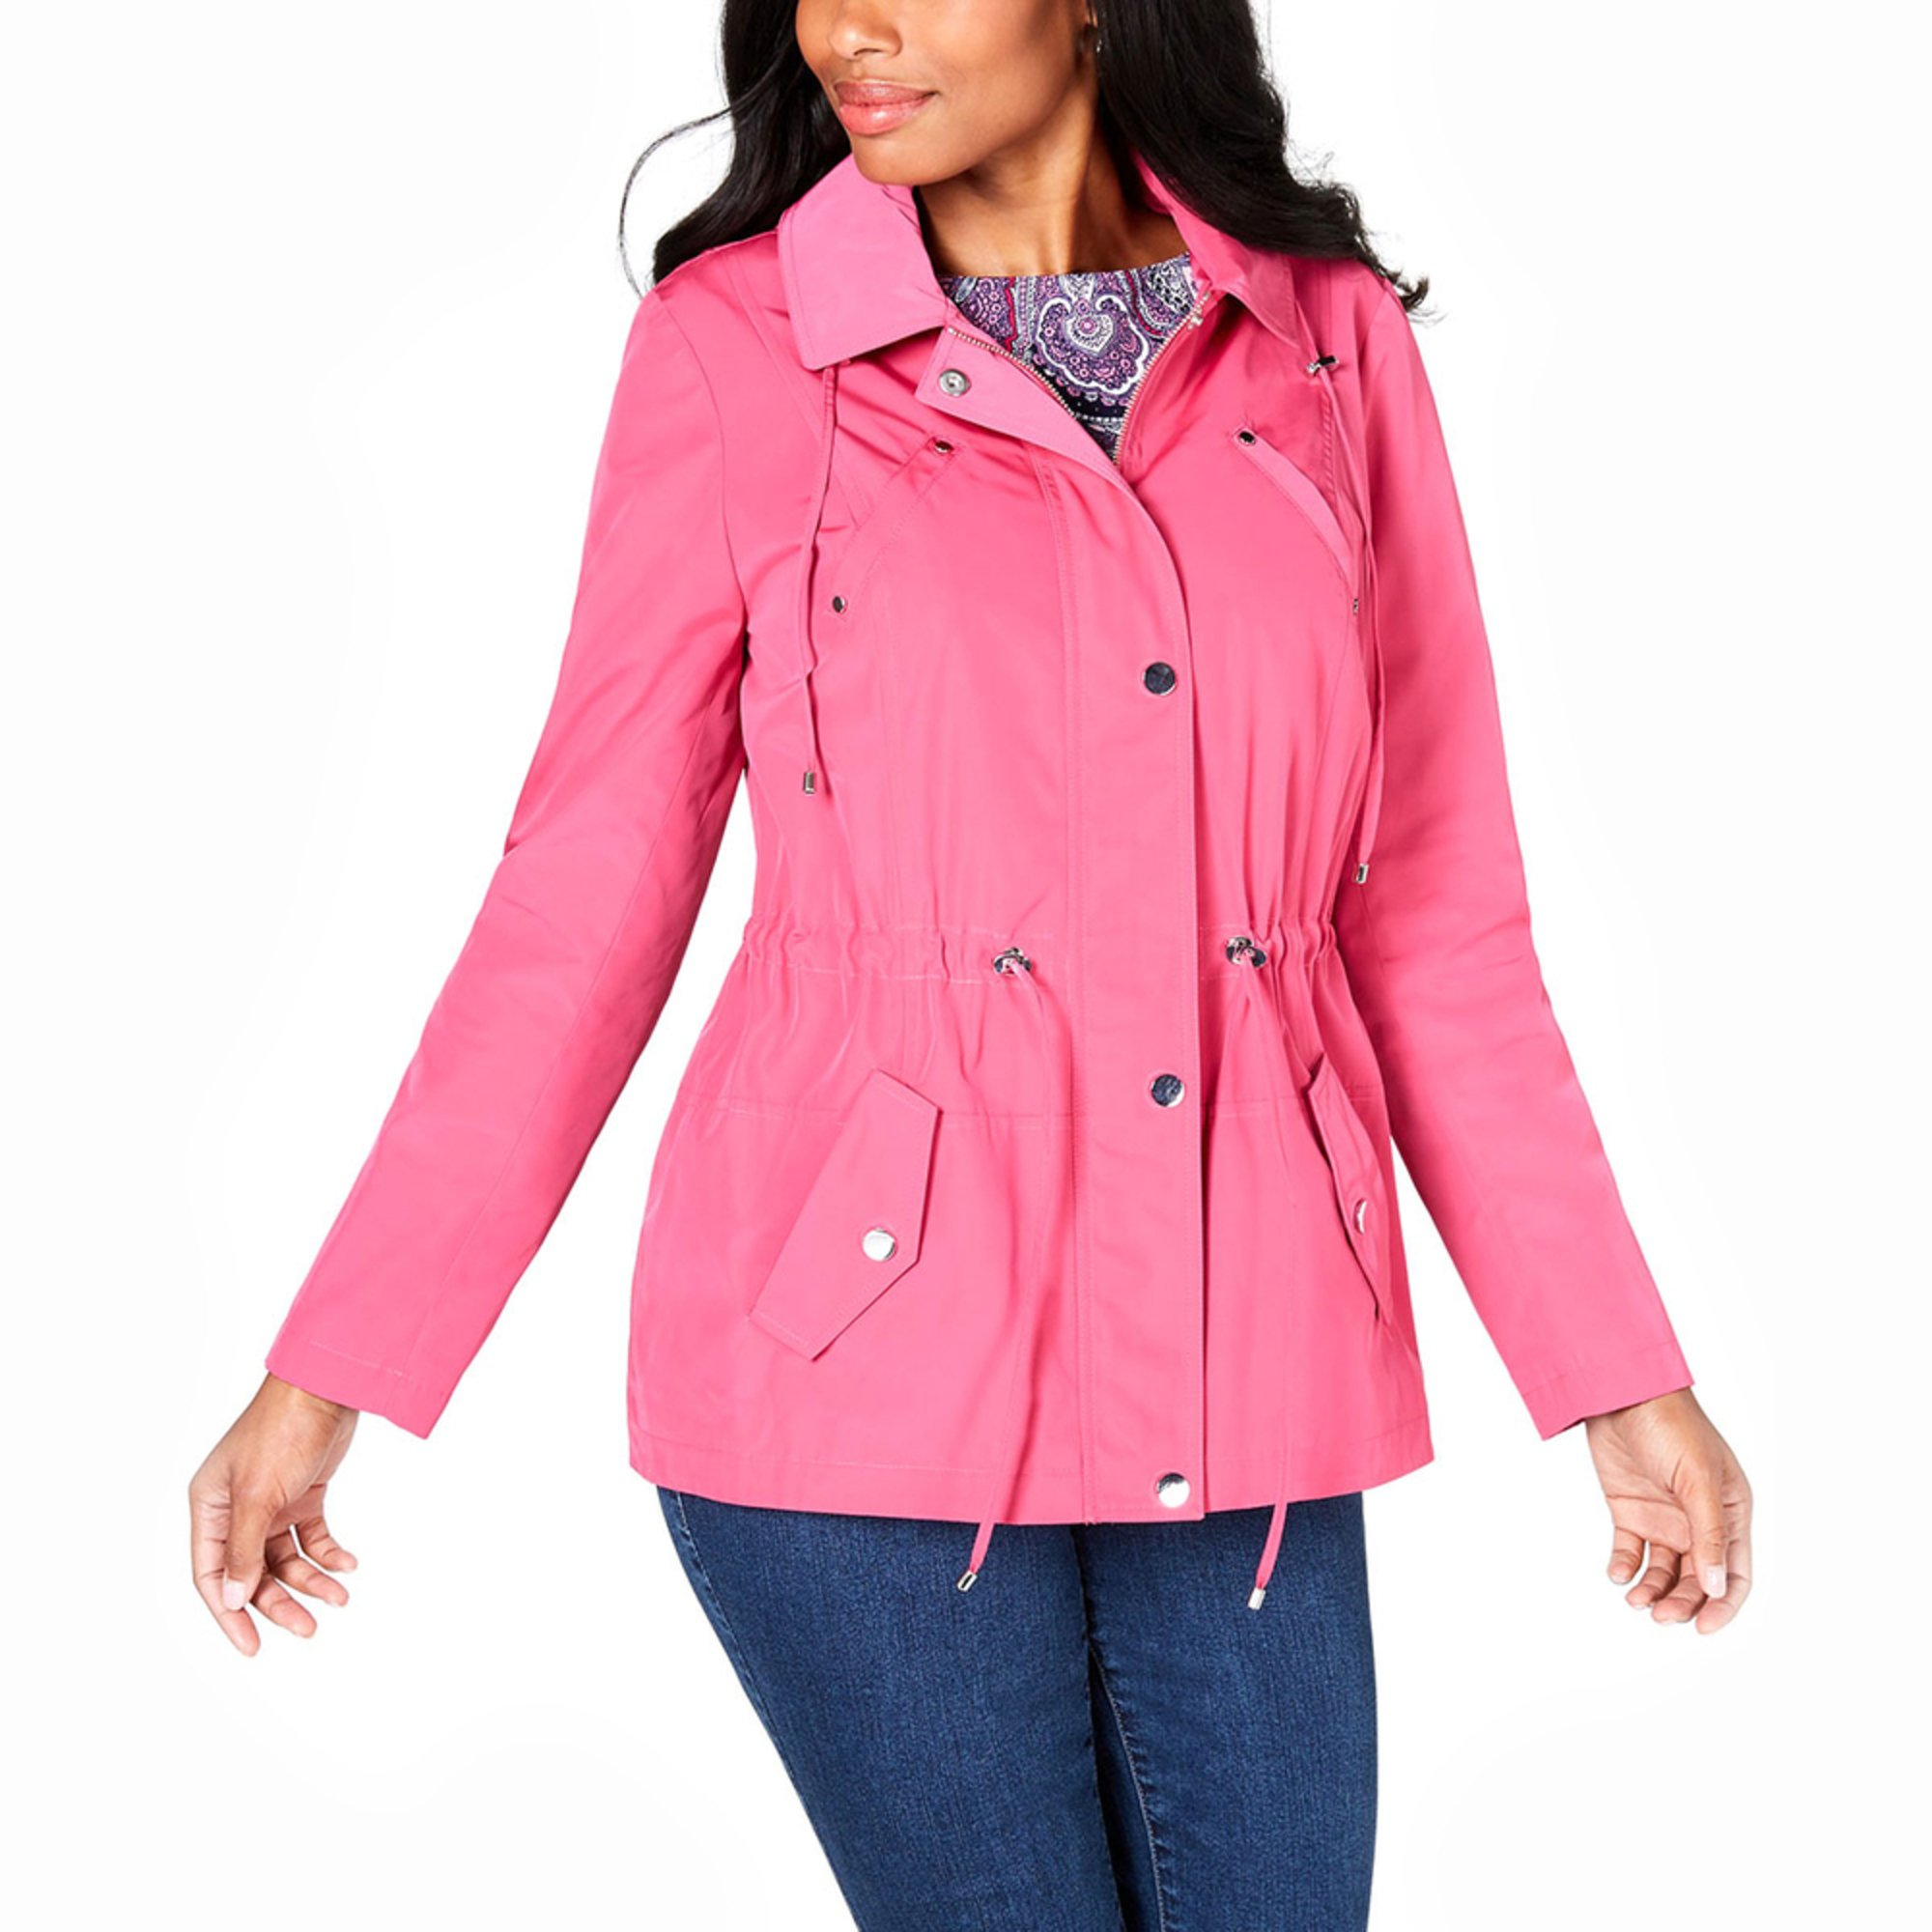 2c13a72b5aff Charter Club Women's Drawstring Anorak Jacket | Casual & Dress ...